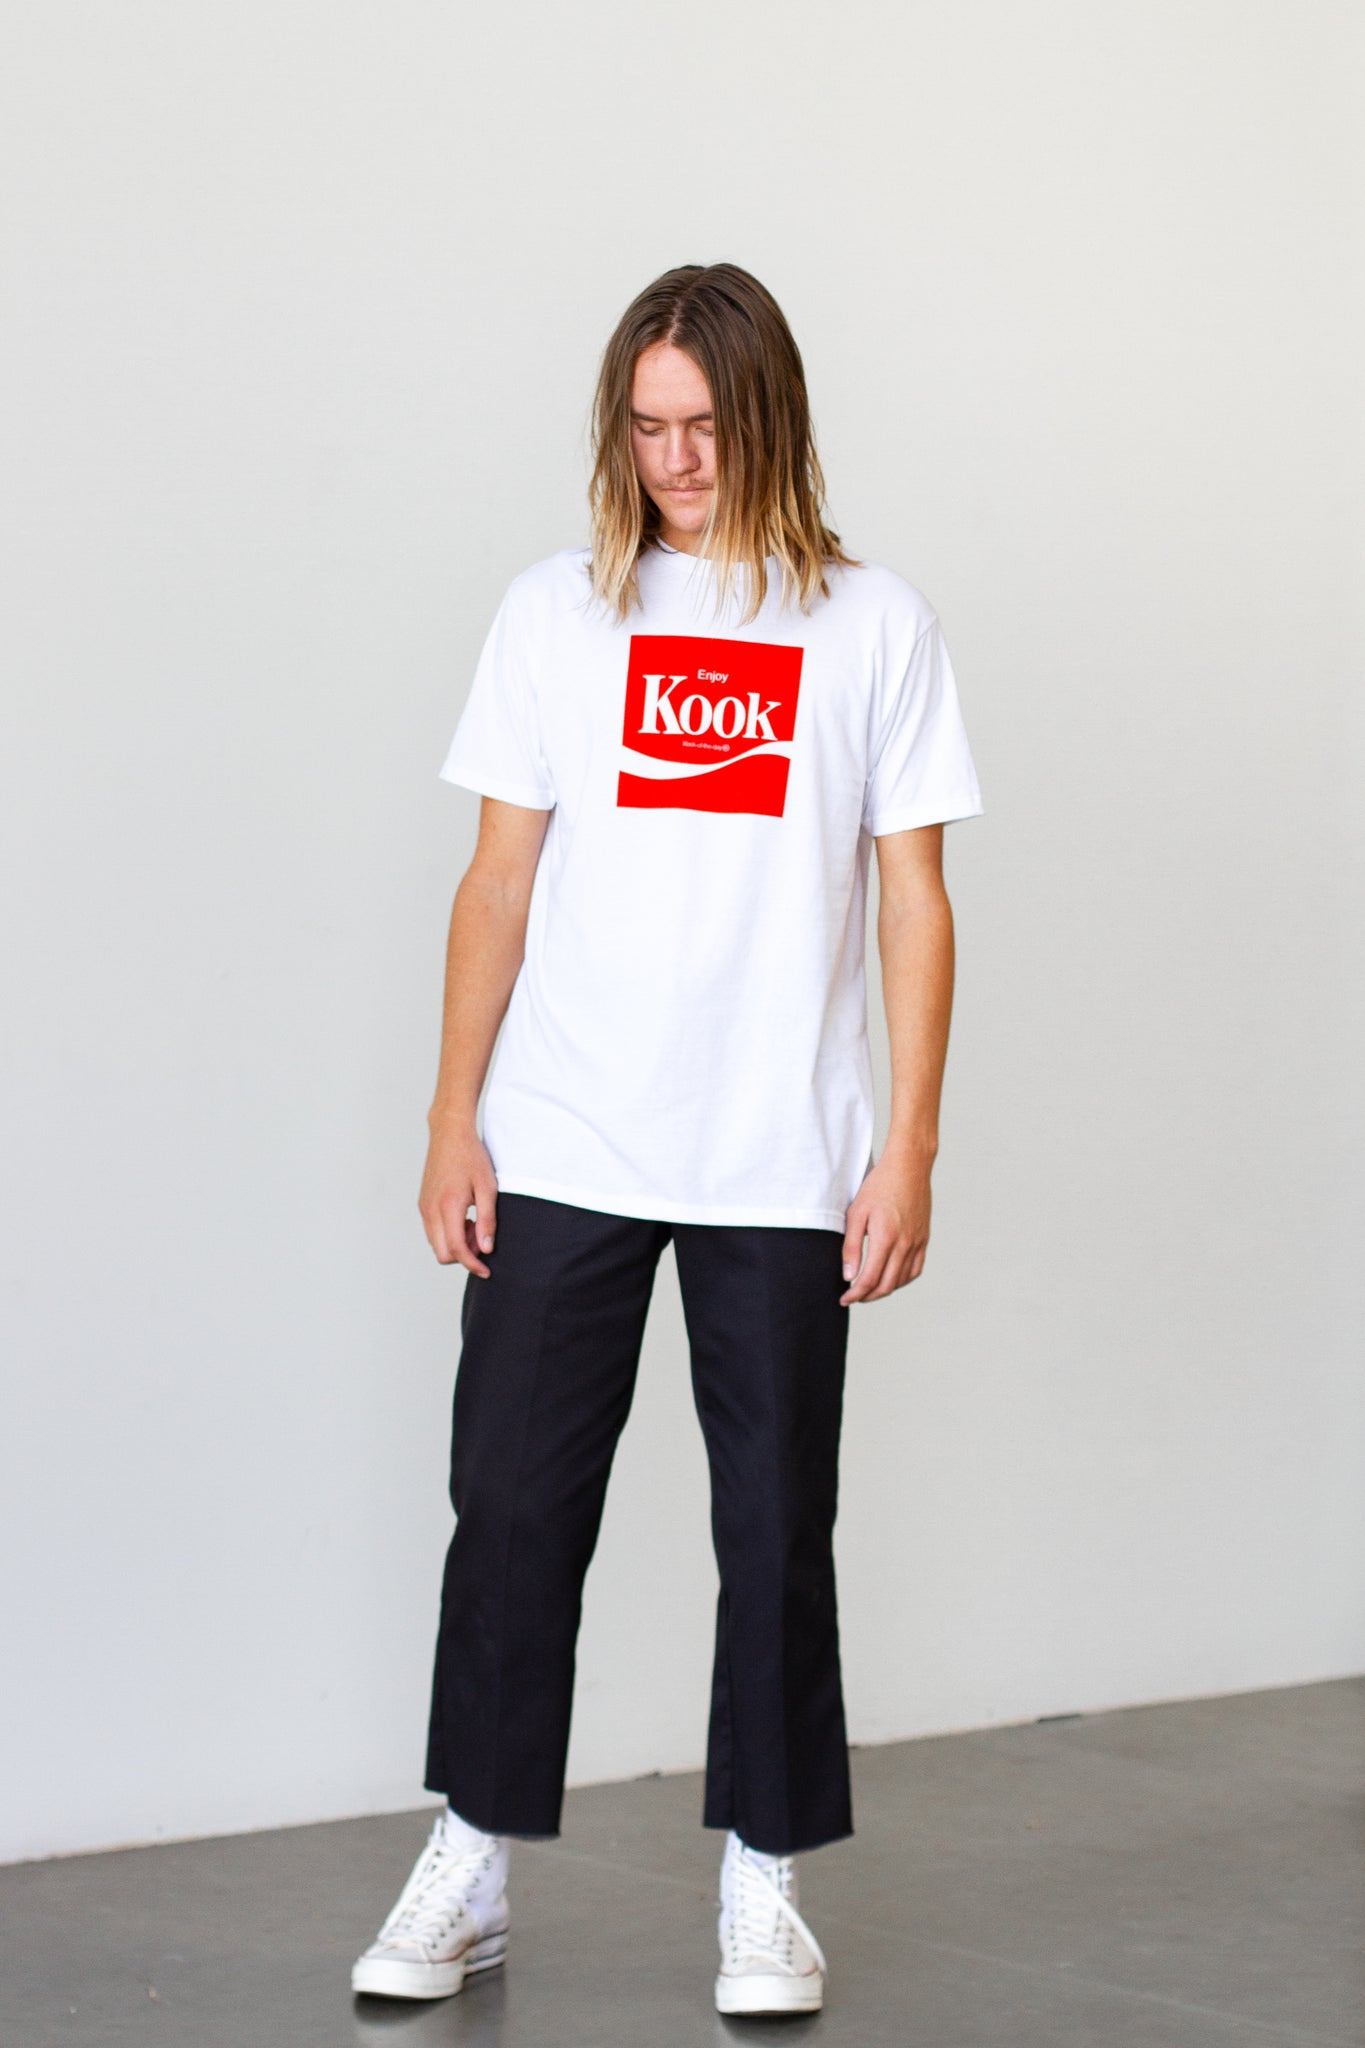 Enjoy Kook White Tee